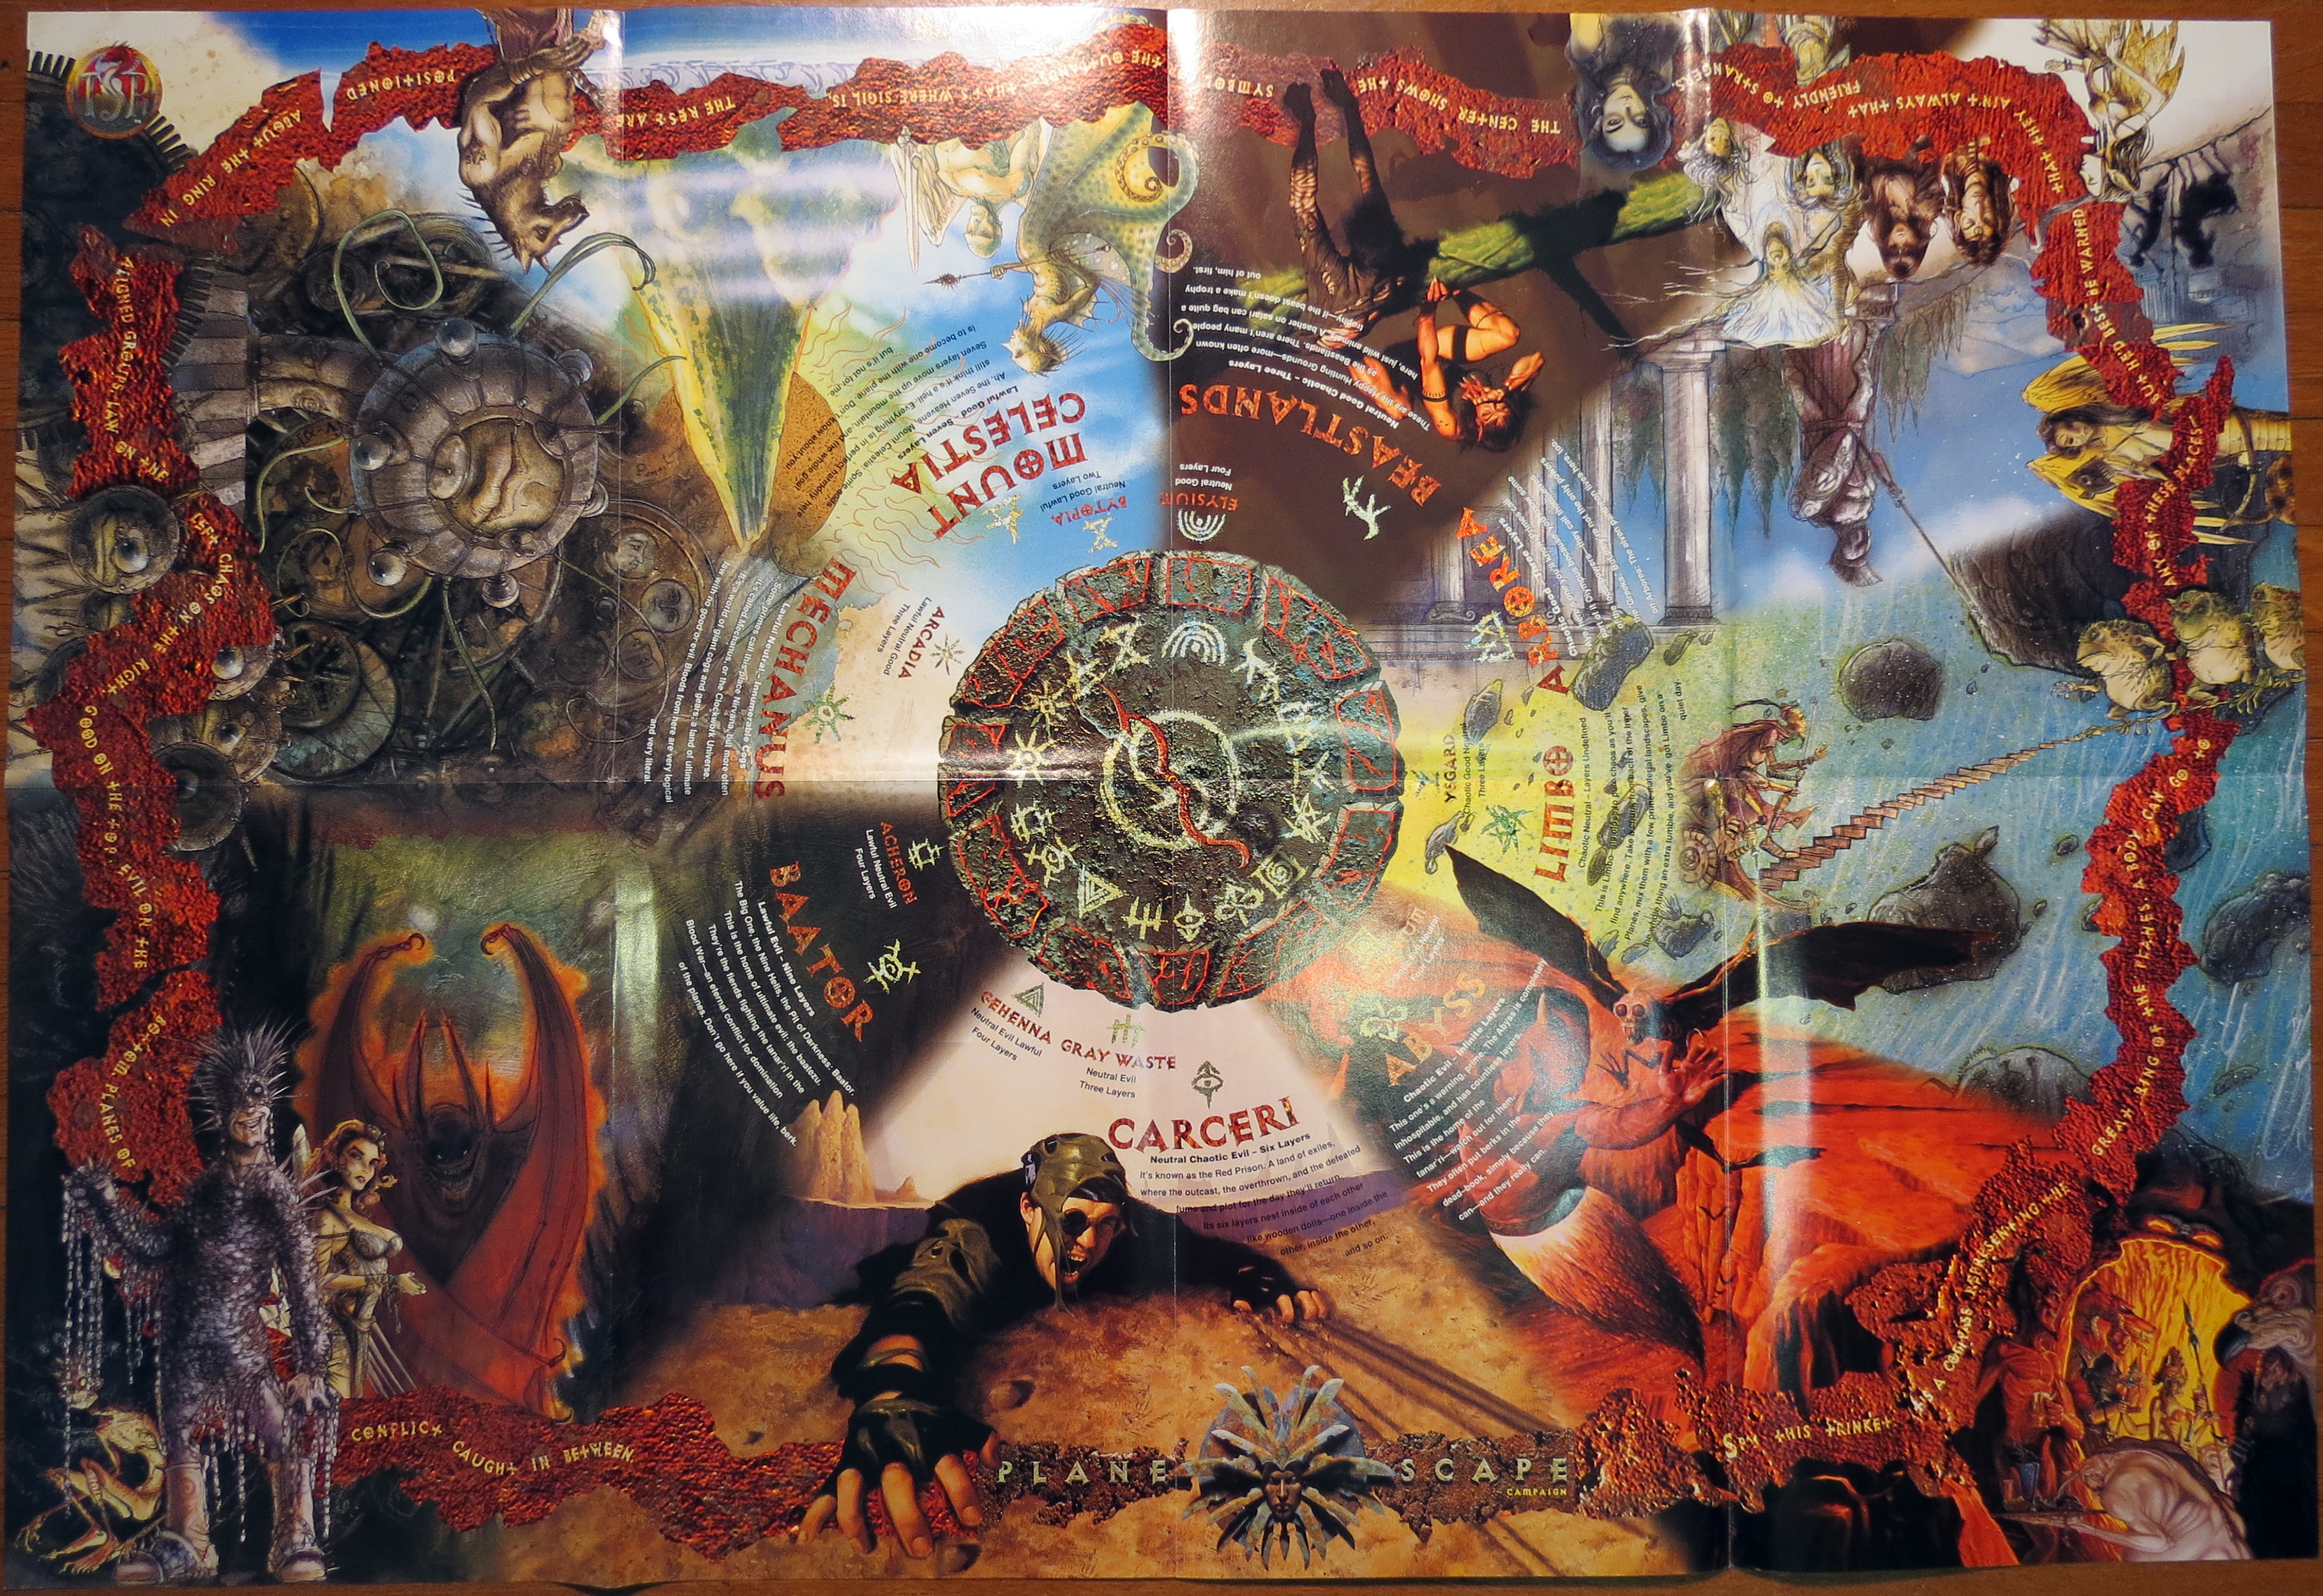 Planescape Posters